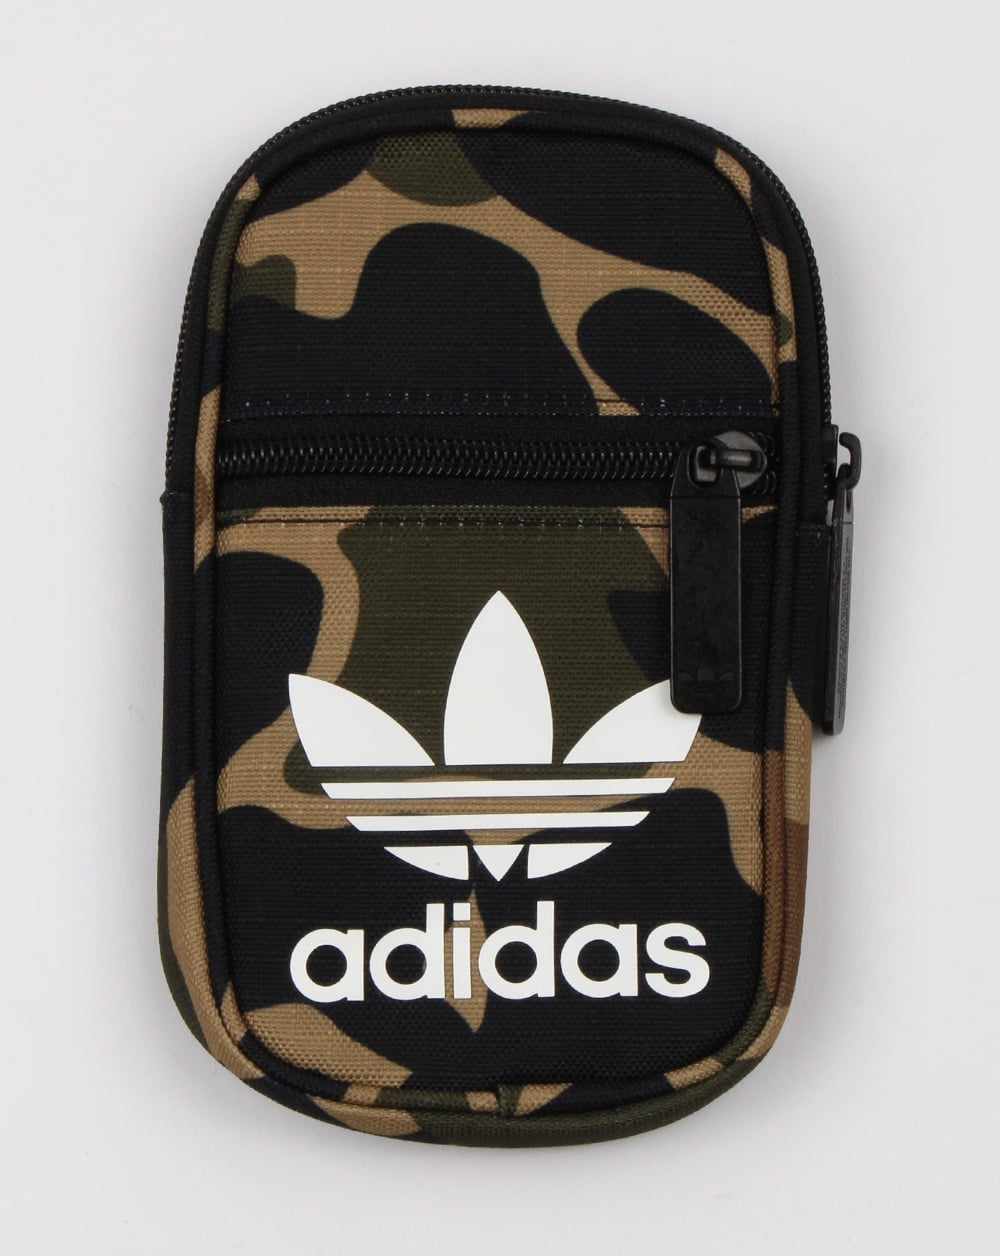 Adidas Originals Pouch Bag Camo e8f33b15d7879